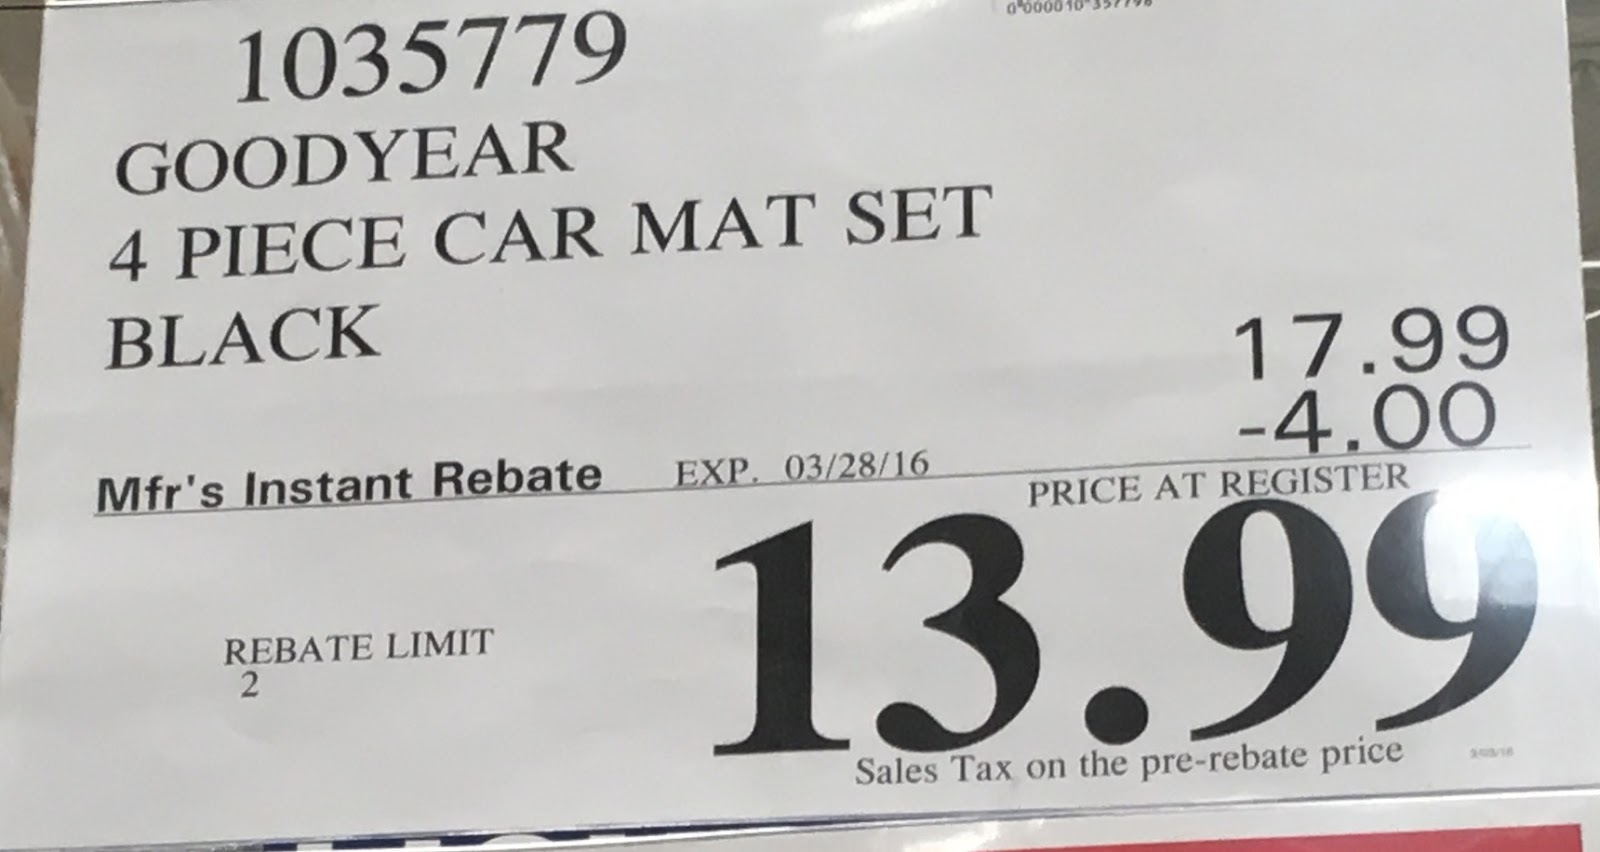 Rubber mats costco - Deal For The Goodyear Carpet Rubber Floor Mats At Costco